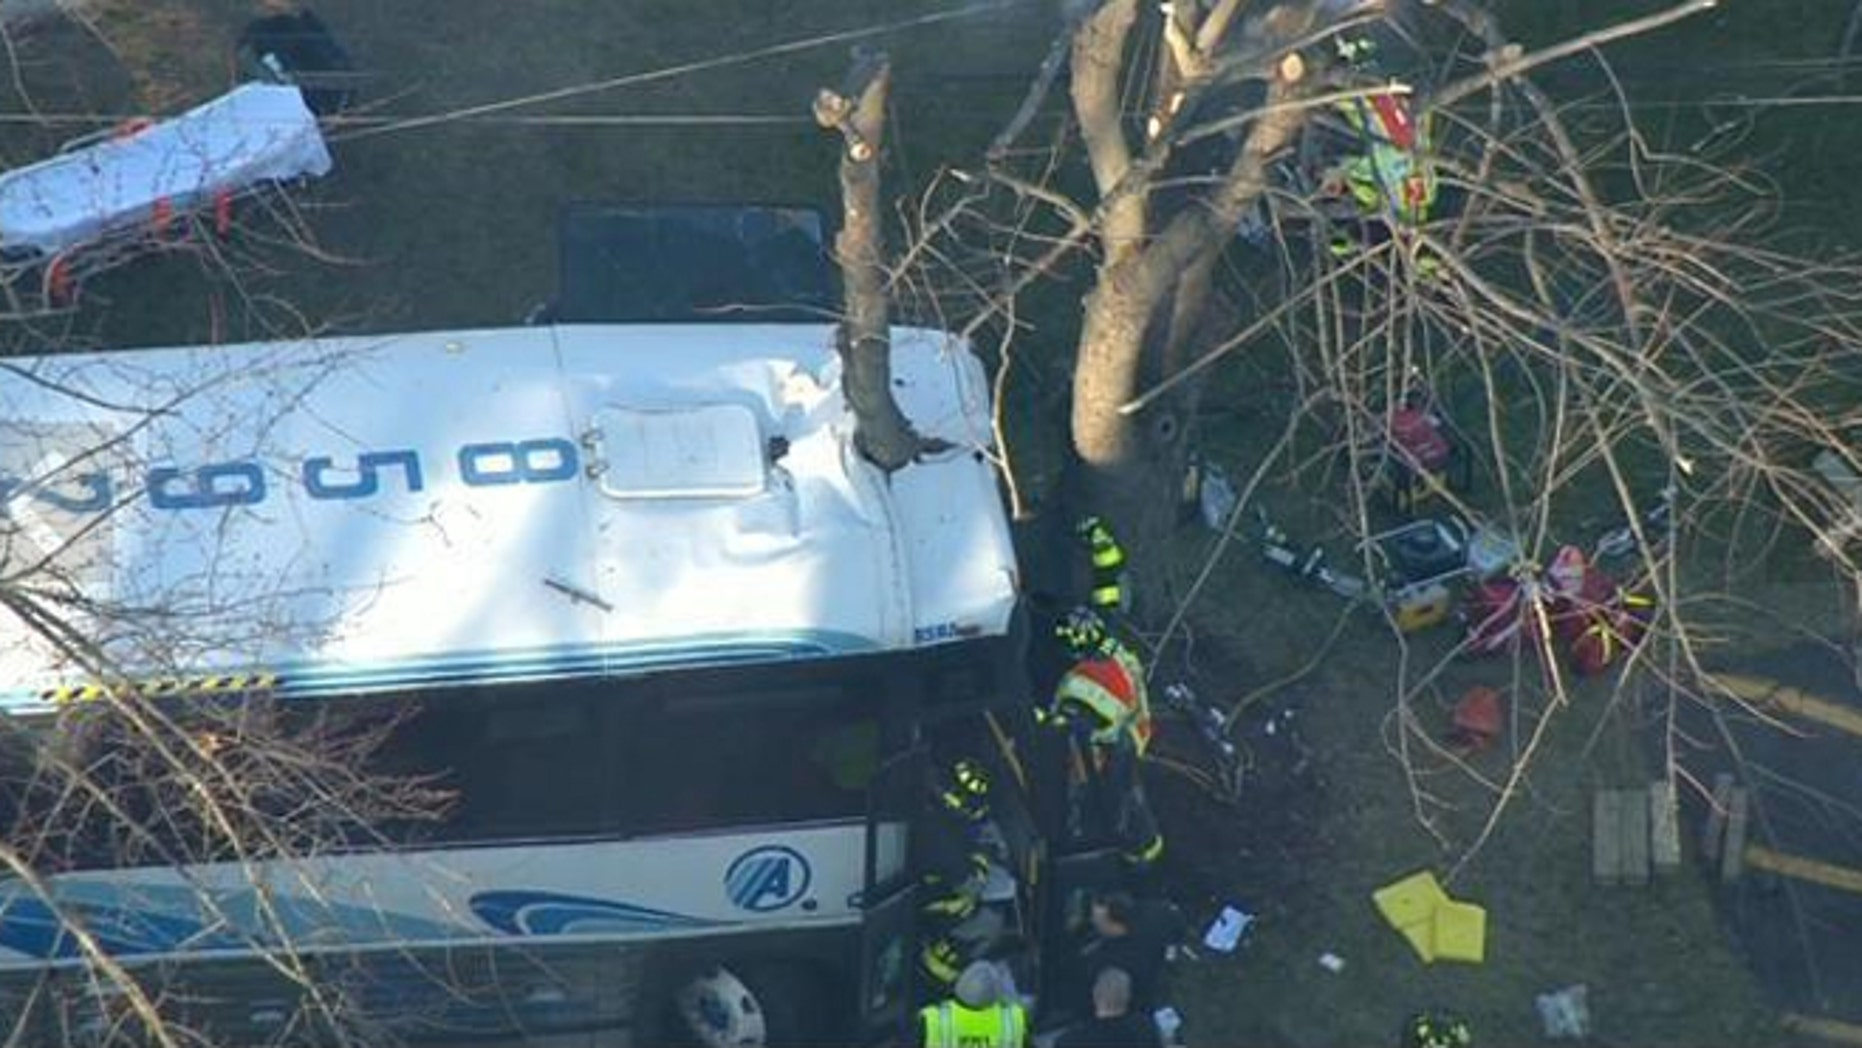 A school bus and a passenger bus were involved in a serious accident on Route 9 in Old Bridge, N.J.